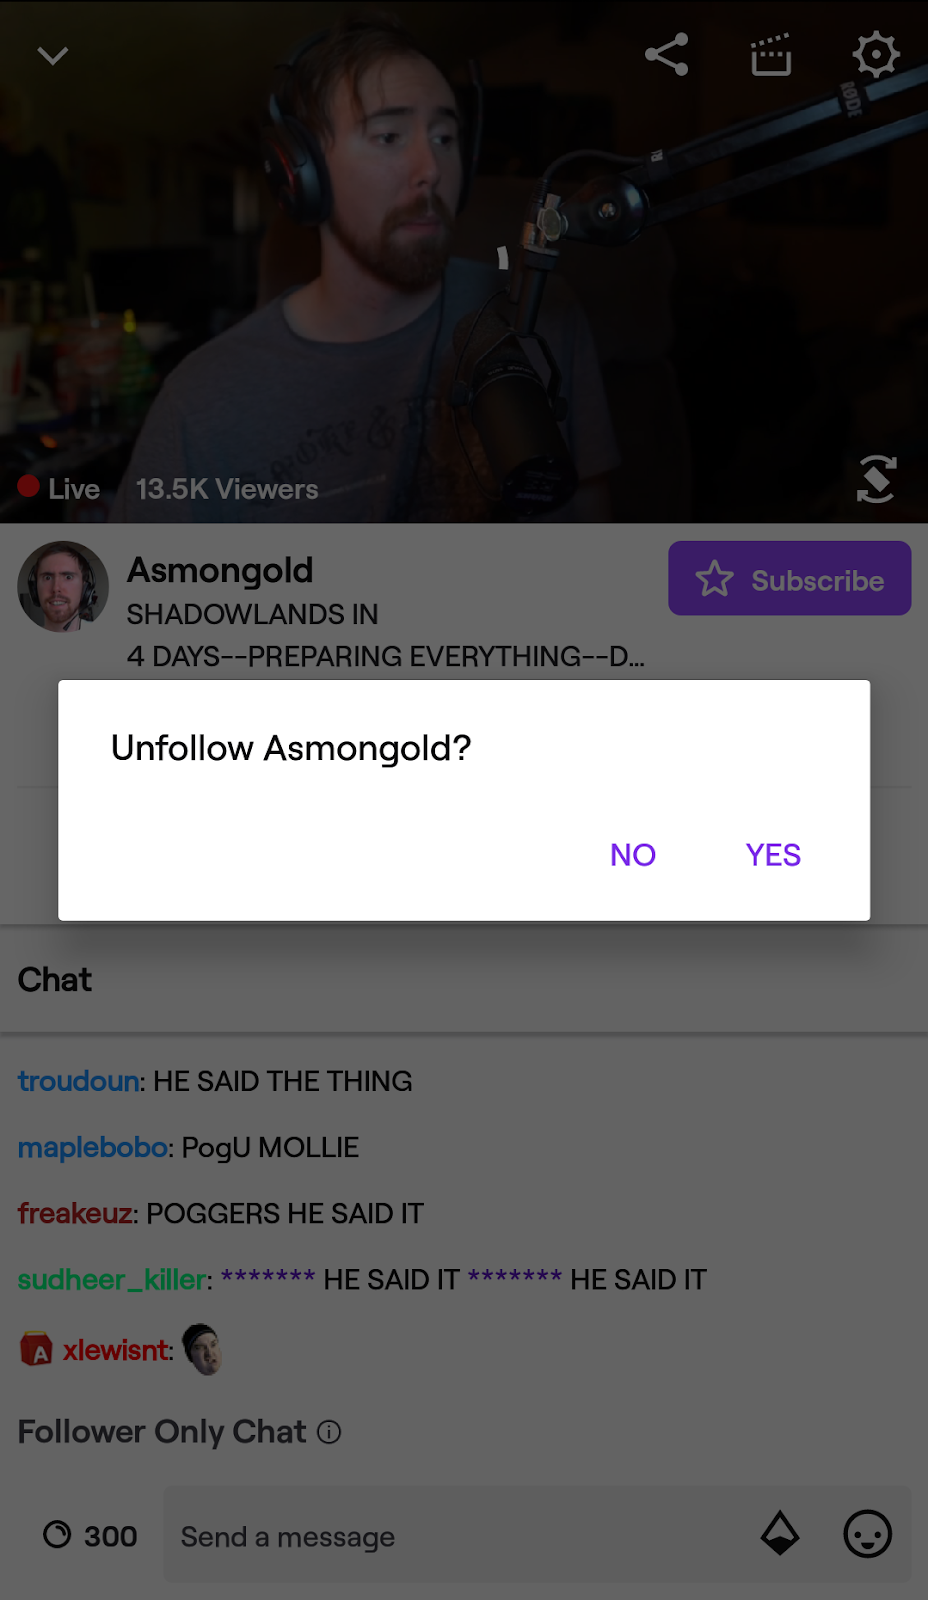 How To Follow And Unfollow Someone On Twitch - Gamenvoy